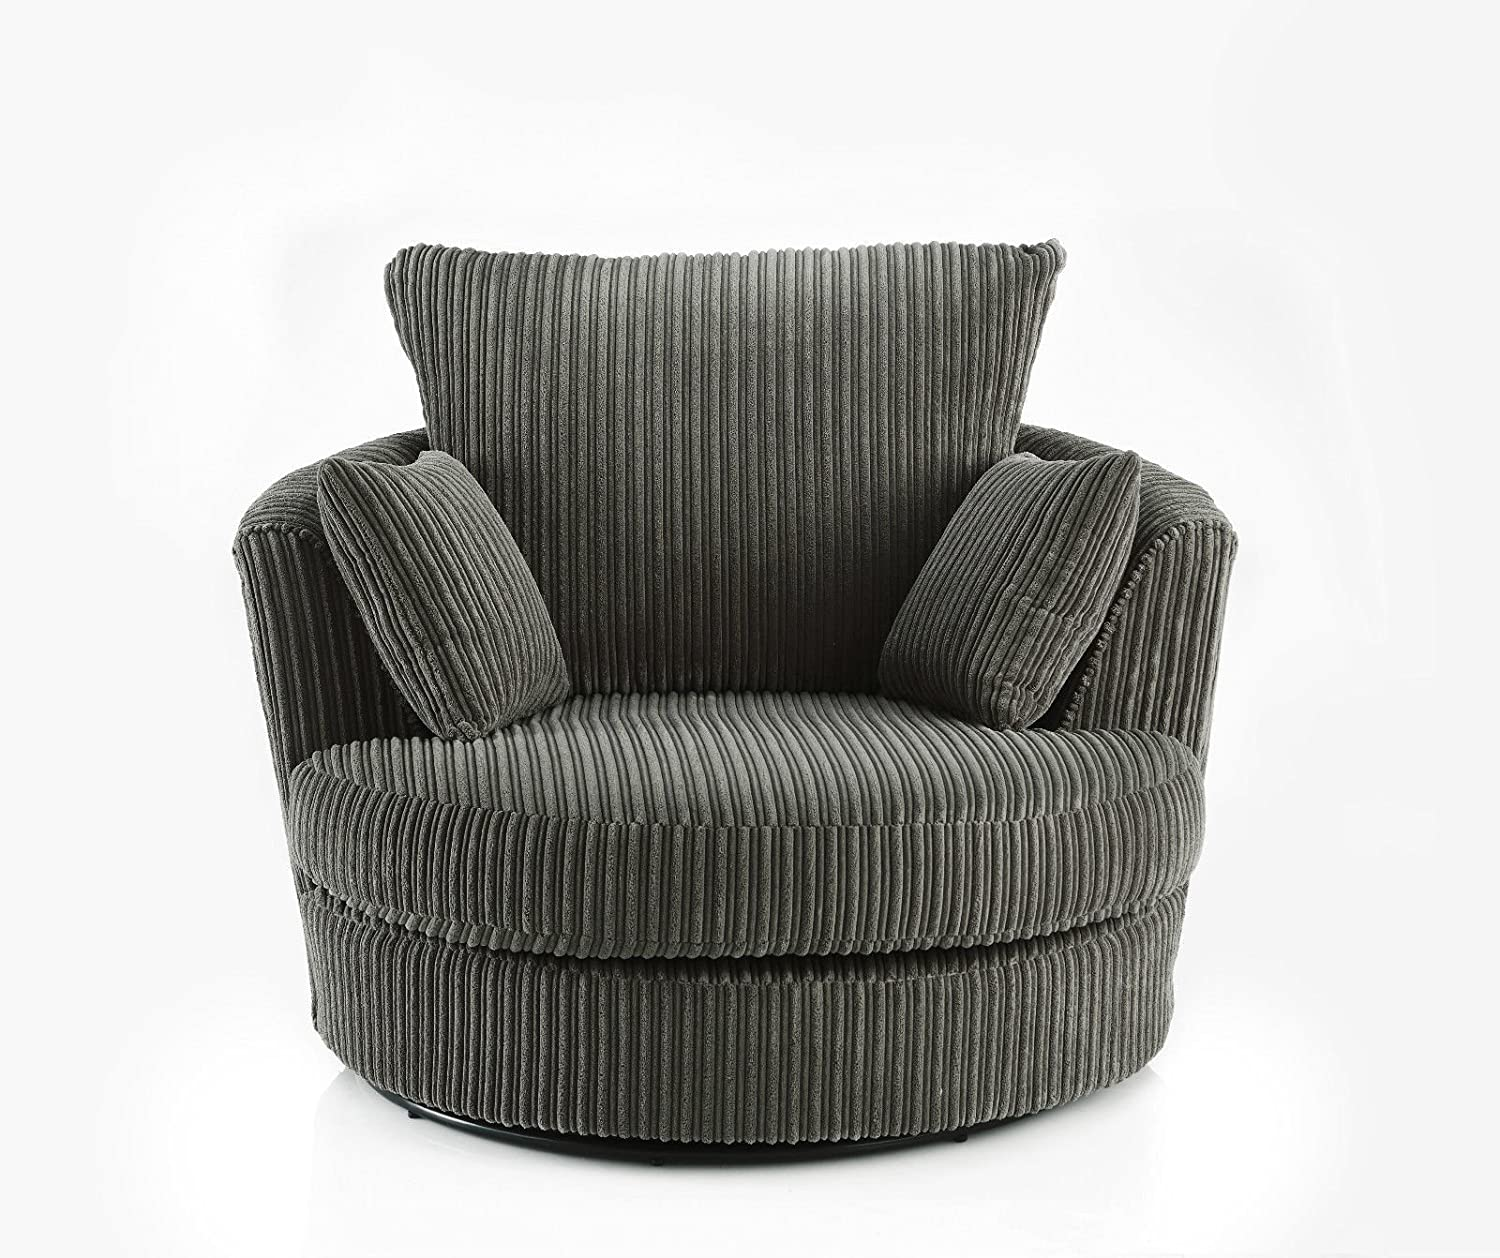 round large best chair fabric scatter swivel cuddle decoration designer corduroy home leather gallery chenille